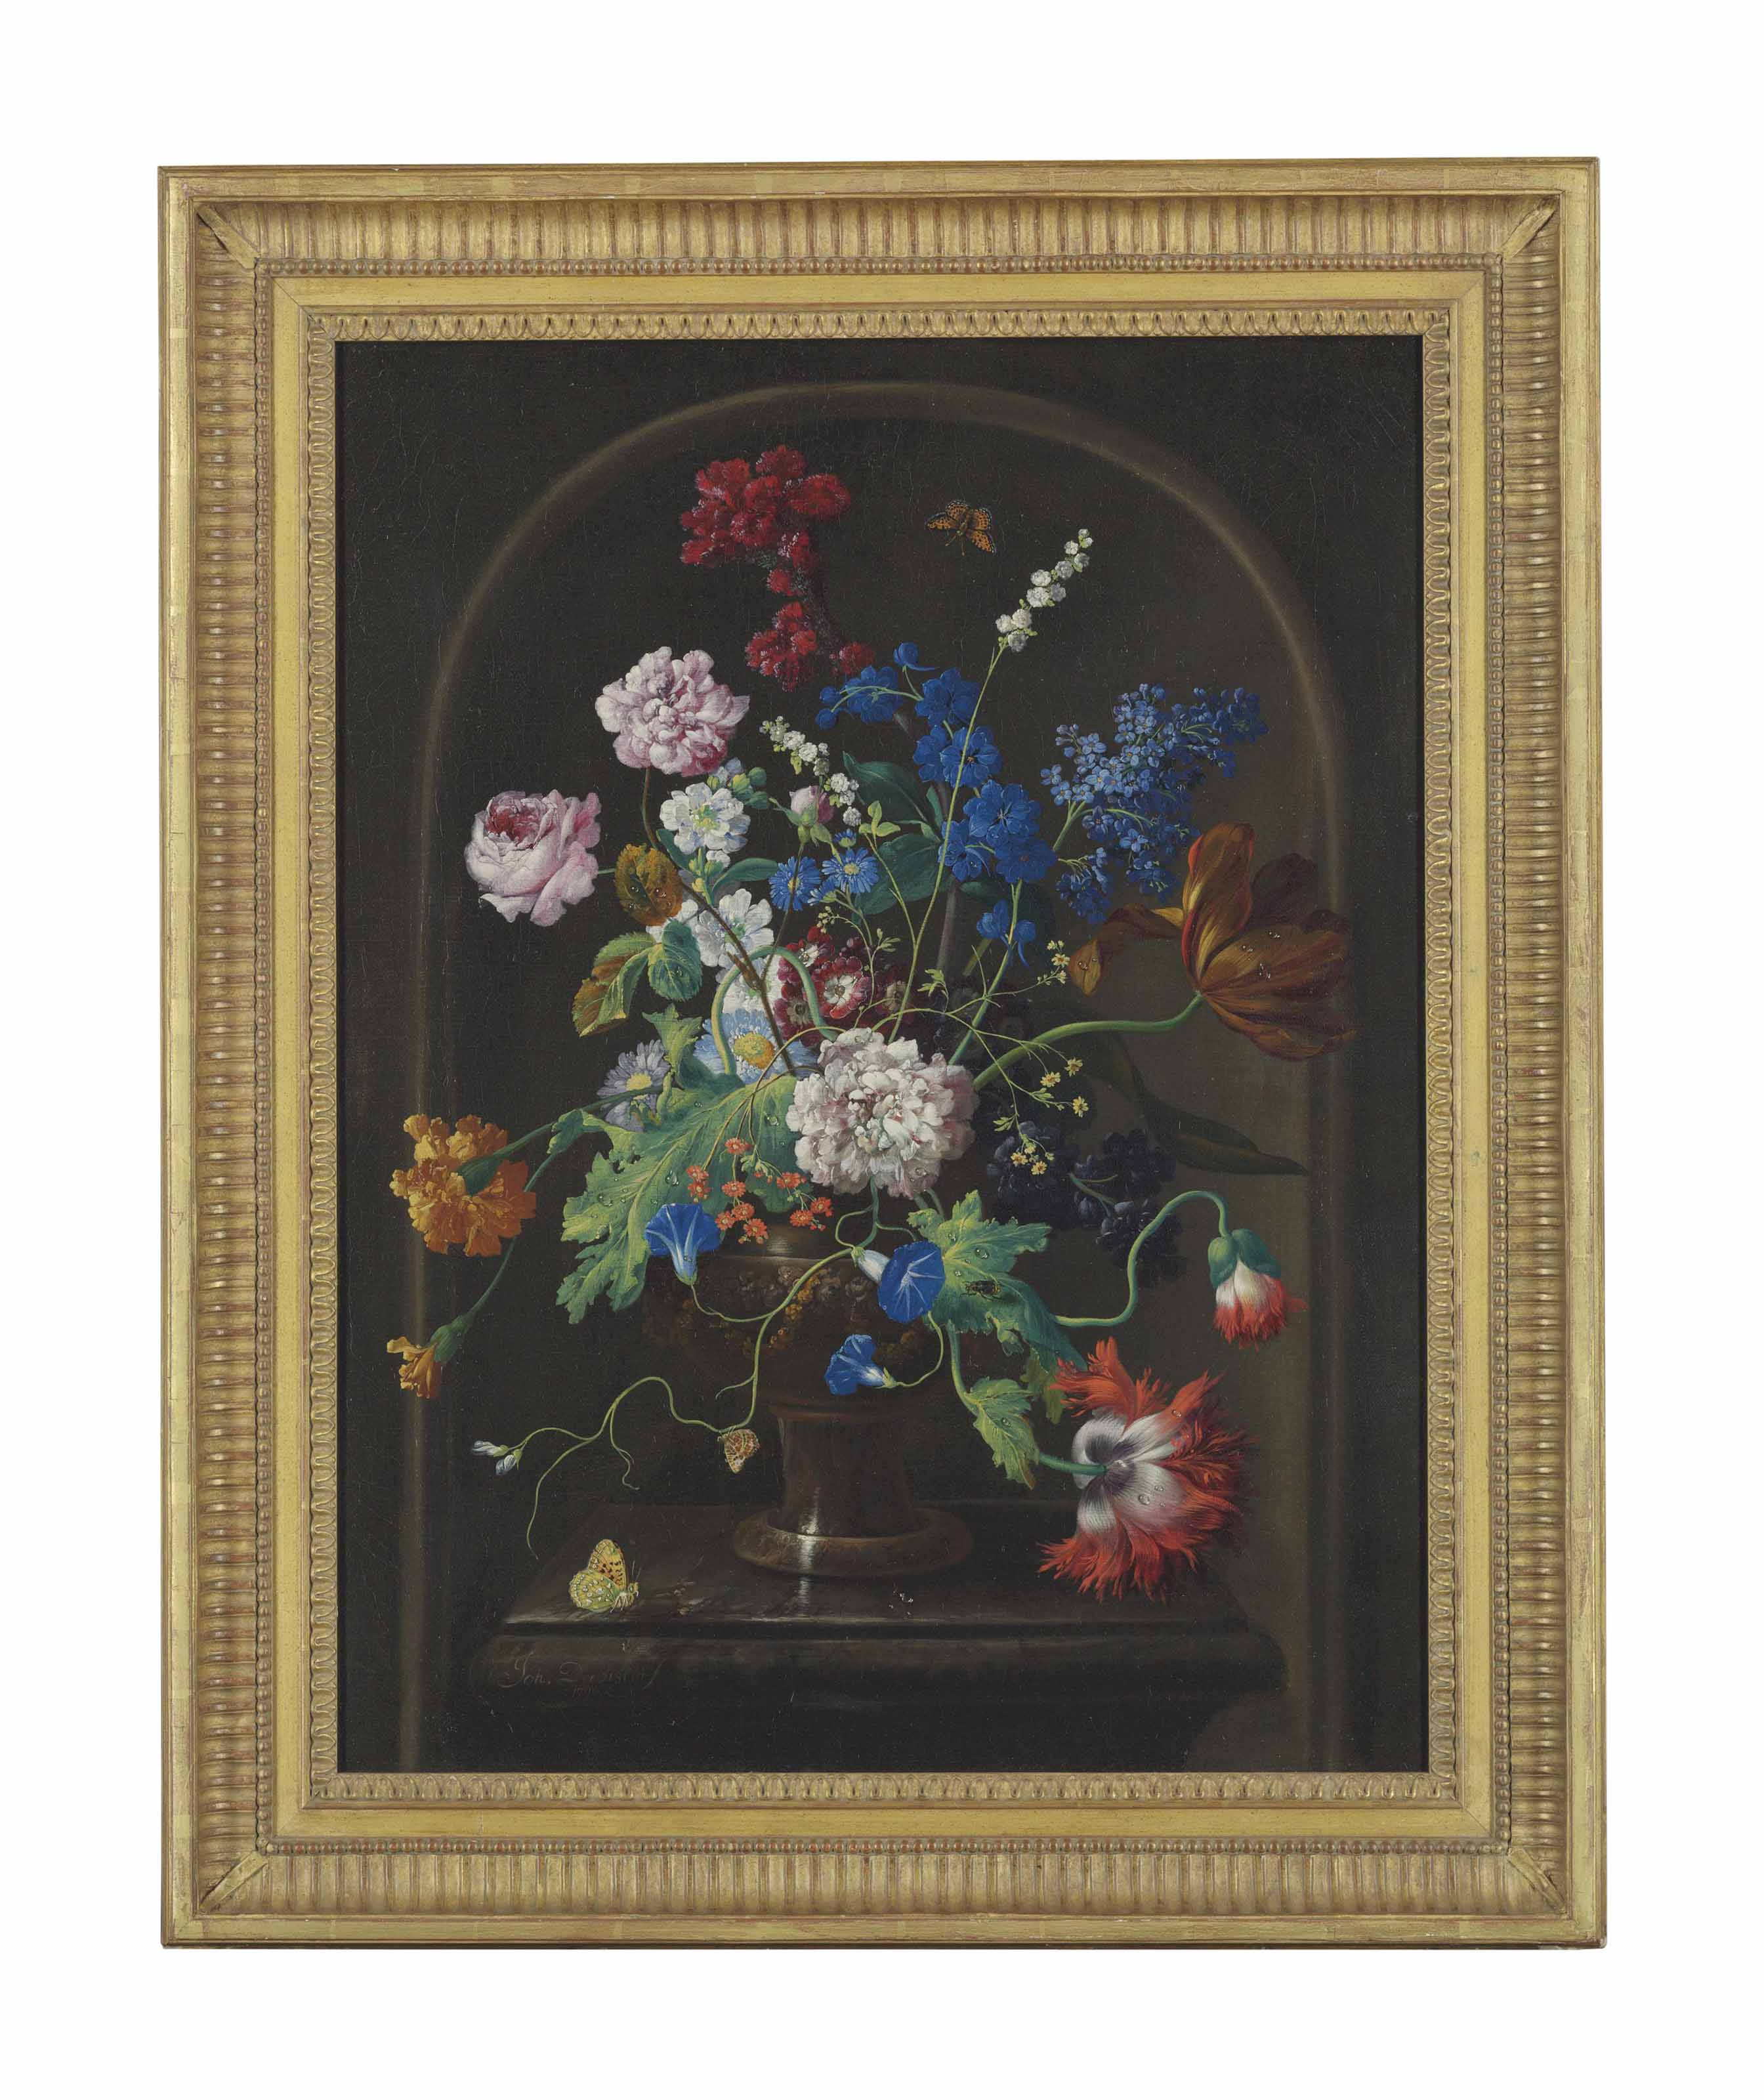 Roses, a parrot tulip, carnations, morning glory and other flowers in a sculpted urn, with butterflies on a marble ledge, in a niche